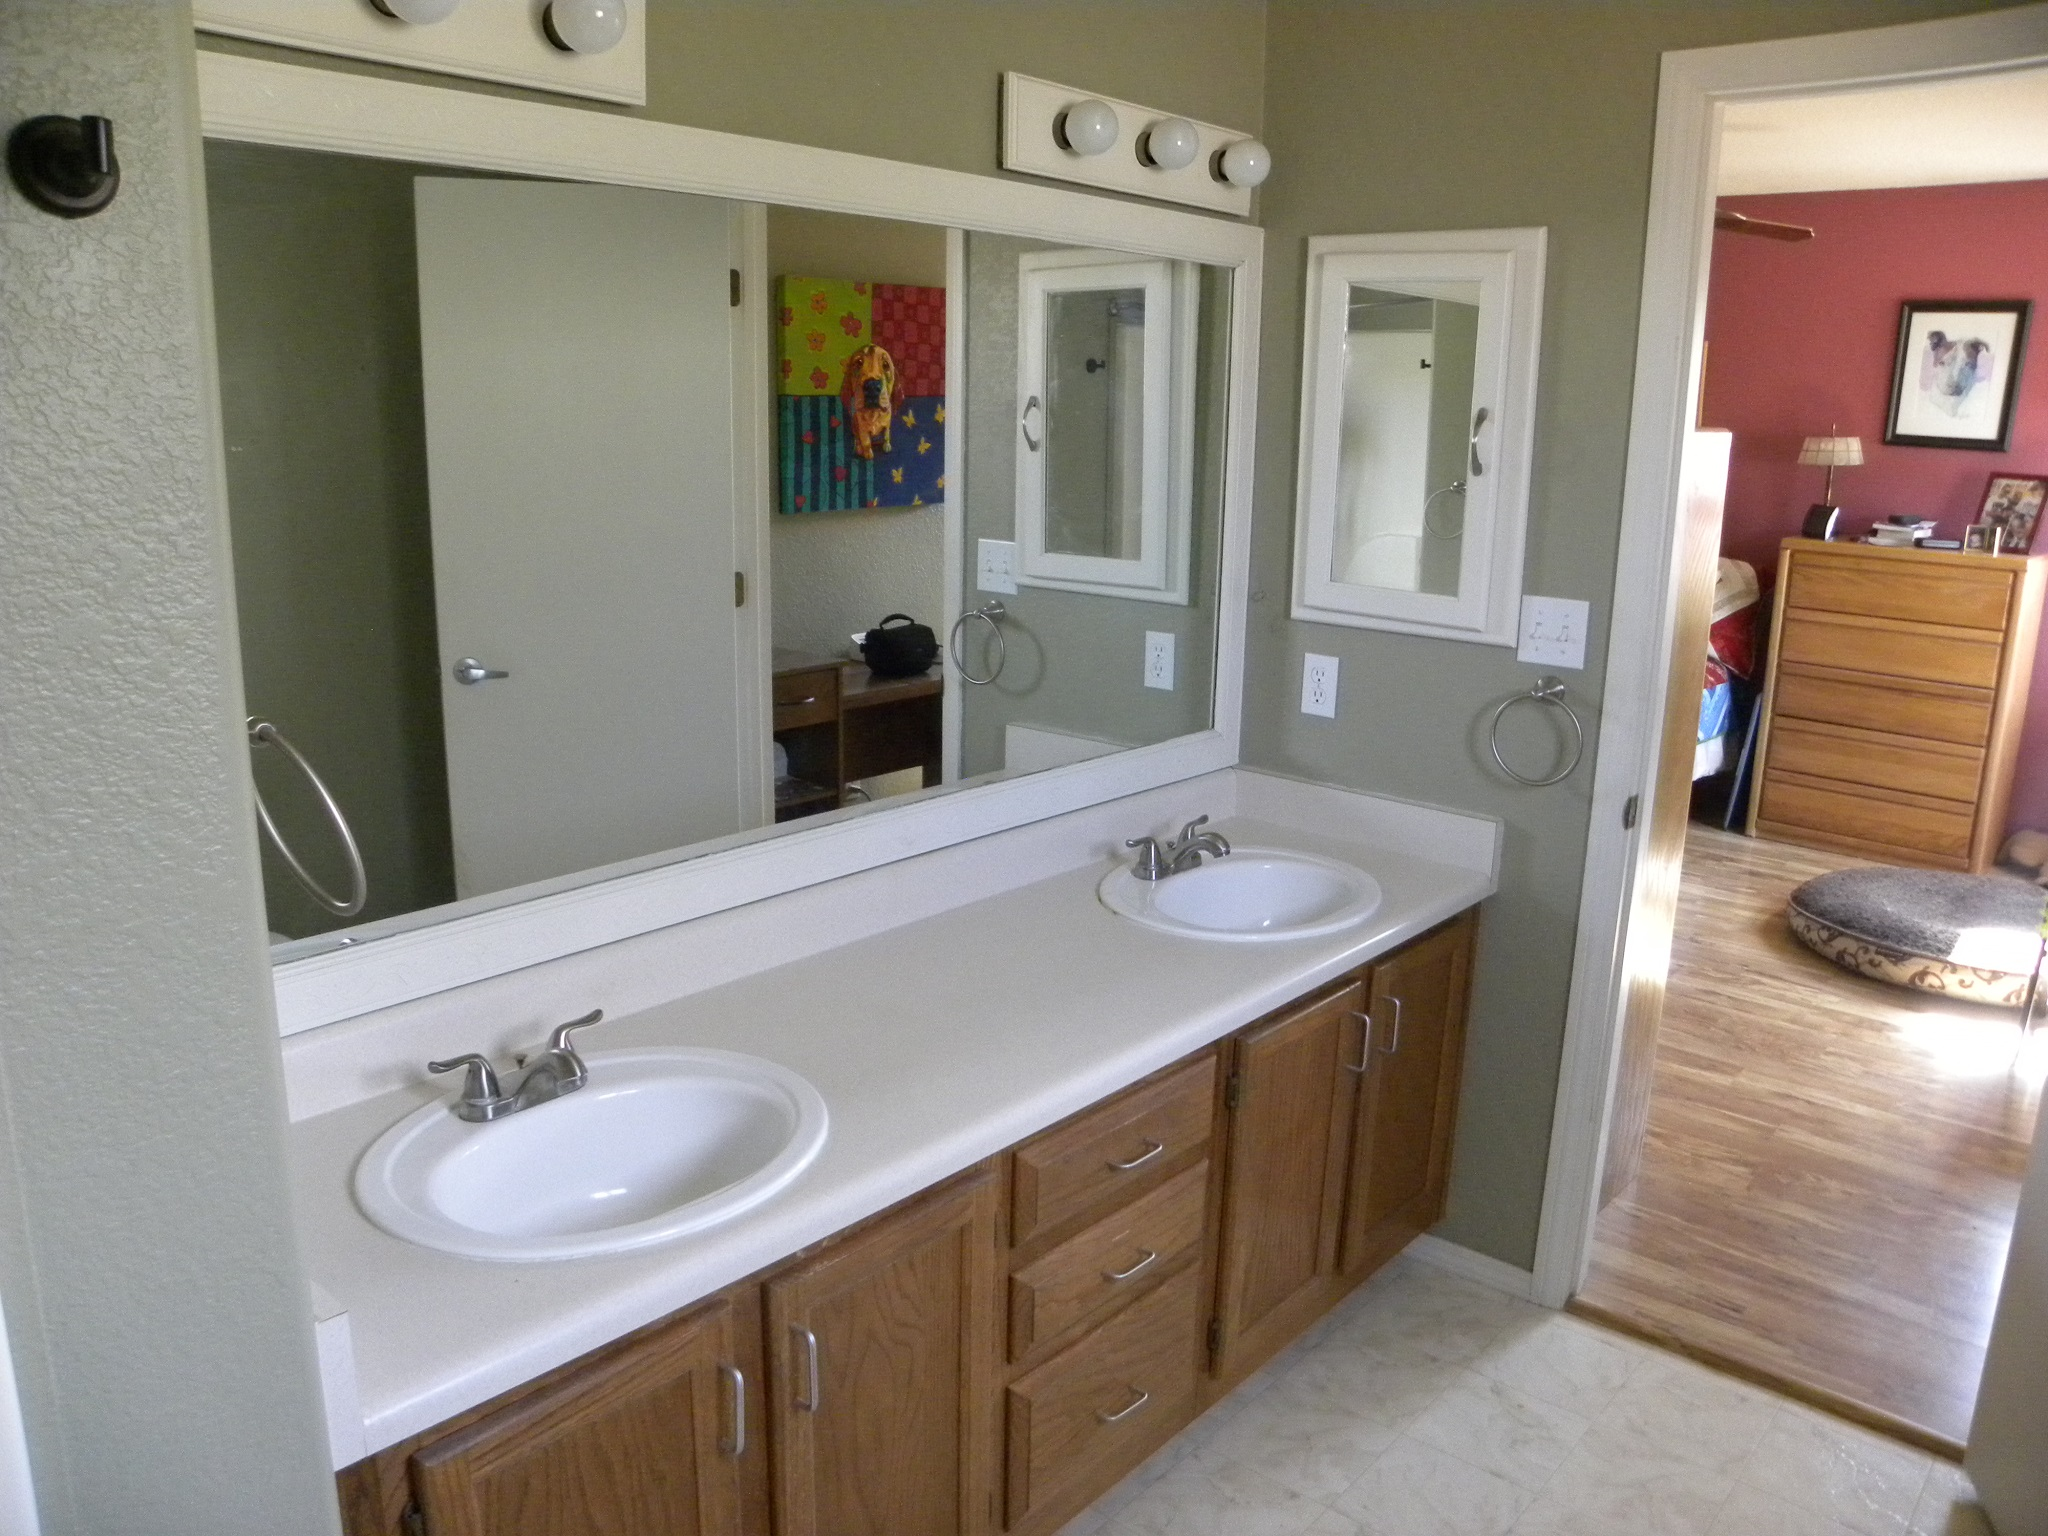 Before photo of a bathroom with white countertop and wooden cabinets in a residential bathroom.